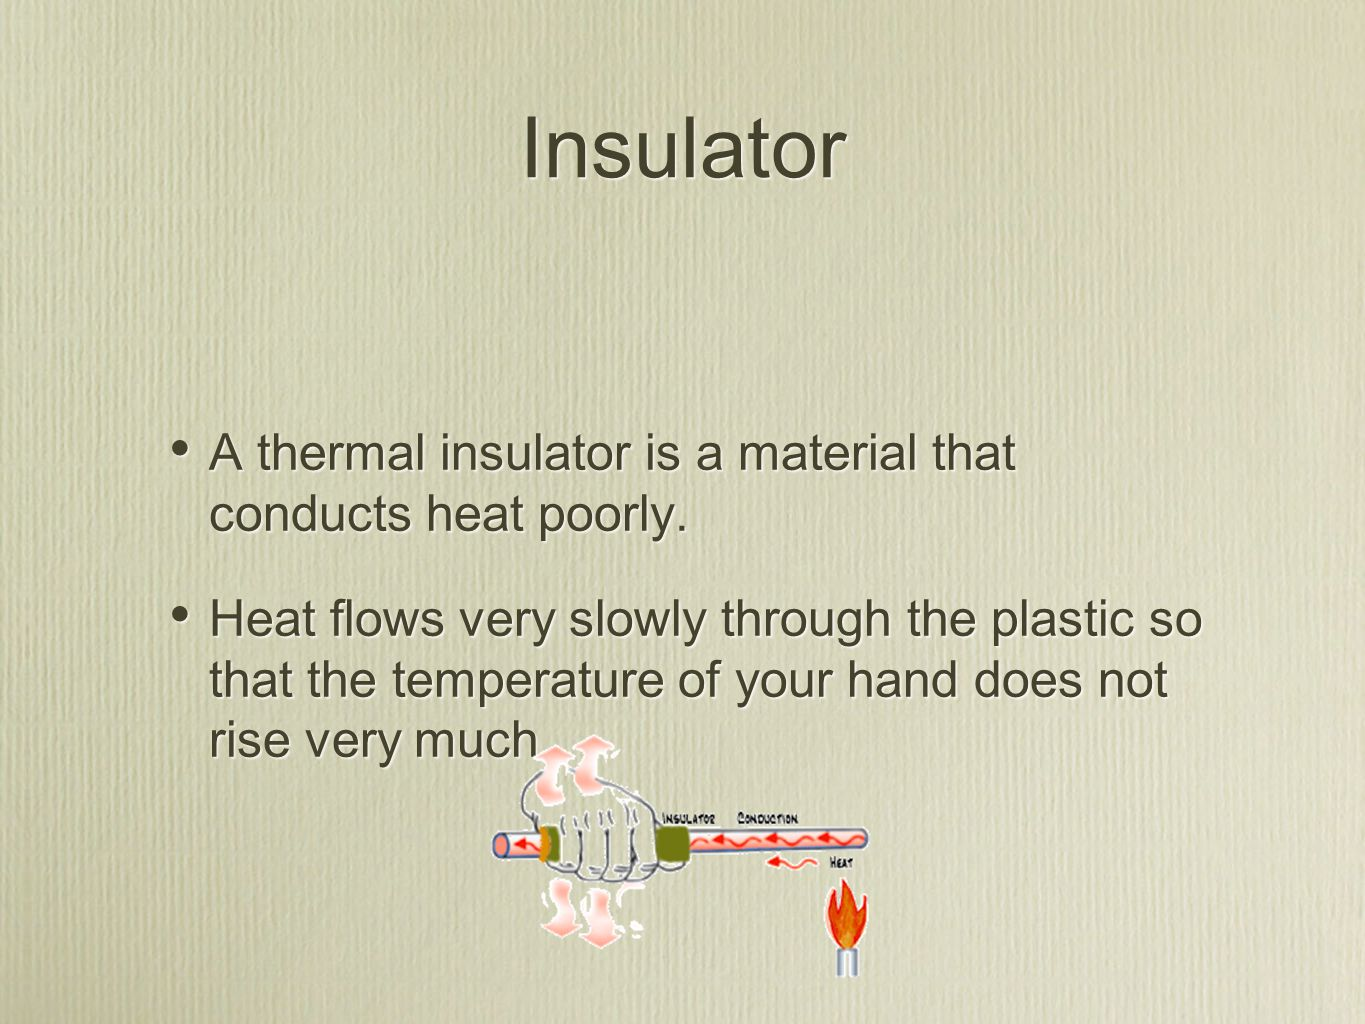 Insulator A thermal insulator is a material that conducts heat poorly. Heat flows very slowly through the plastic so that the temperature of your hand